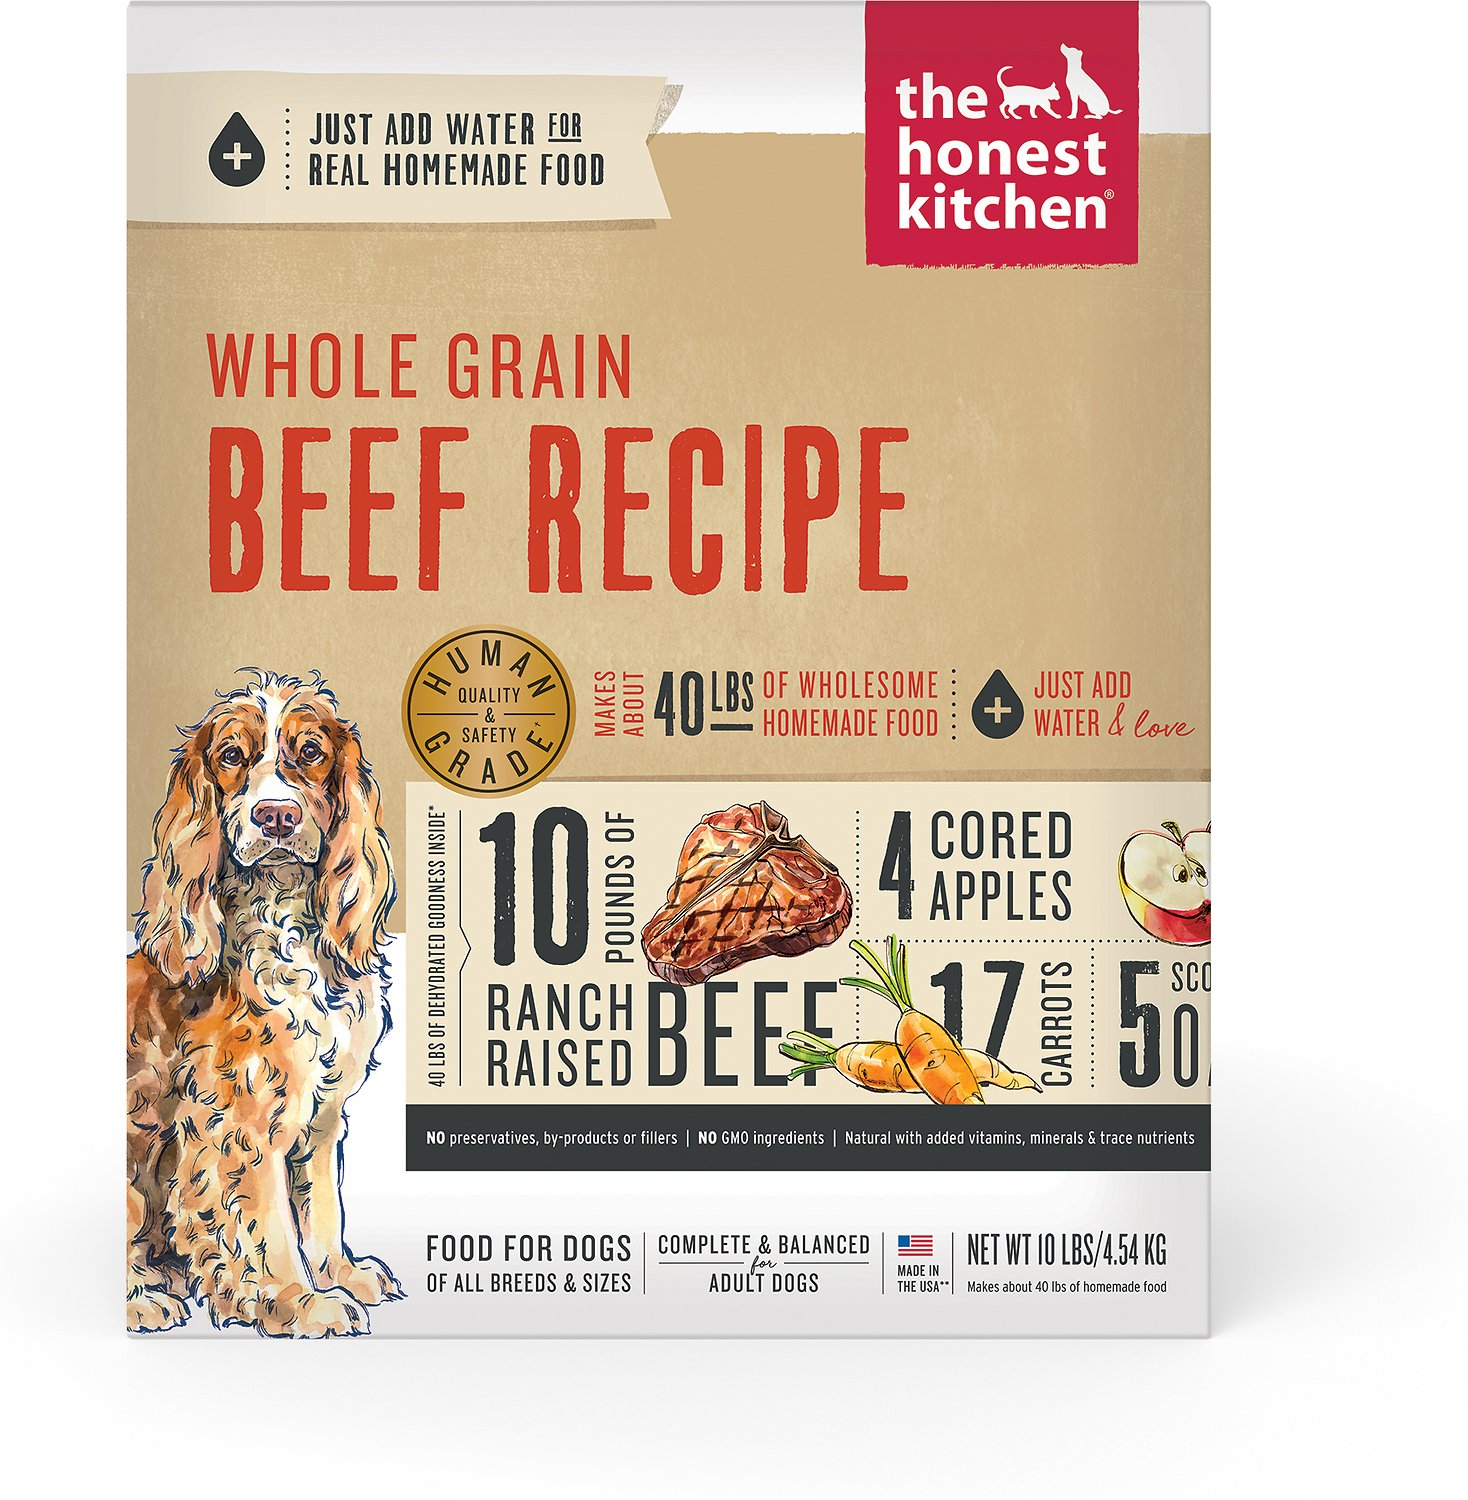 The Honest Kitchen Verve Dehydrated Dog Food Lb Box Chewycom - Honest kitchen dog food